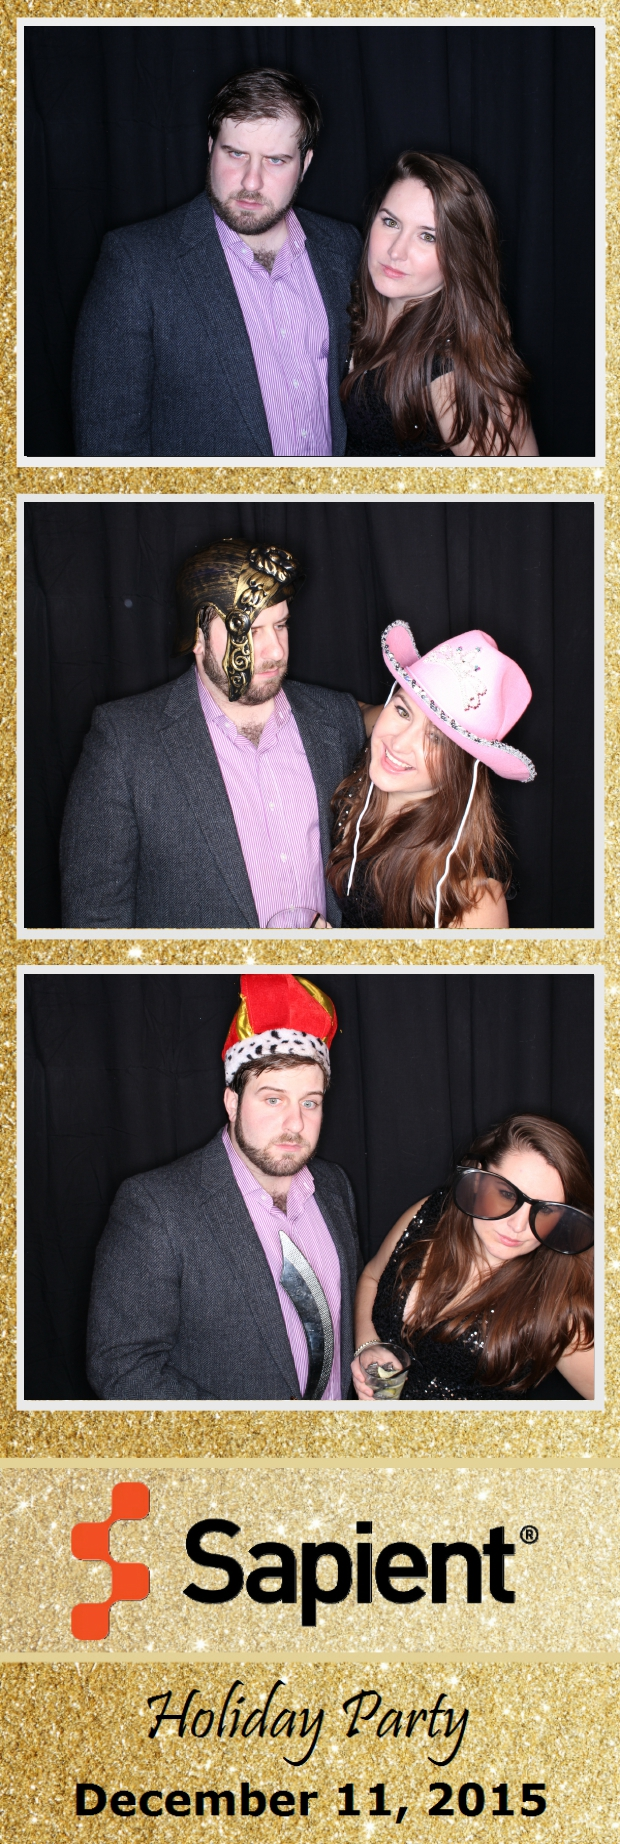 Guest House Events Photo Booth Sapient Holiday Party (25).jpg